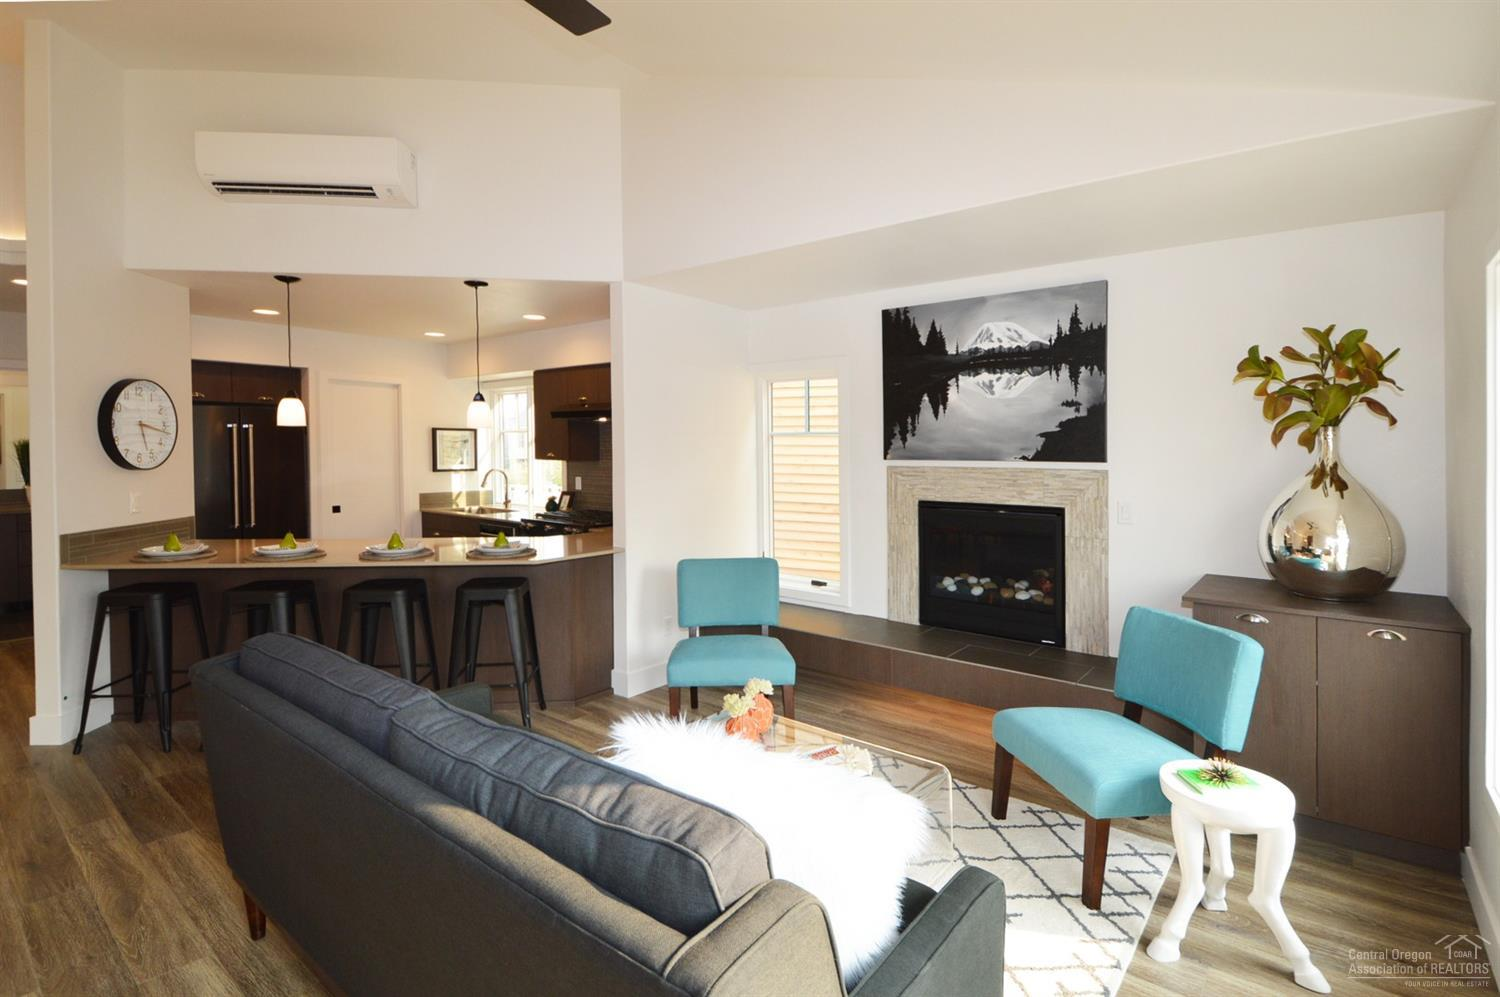 Staged photos of a similar floor plan.